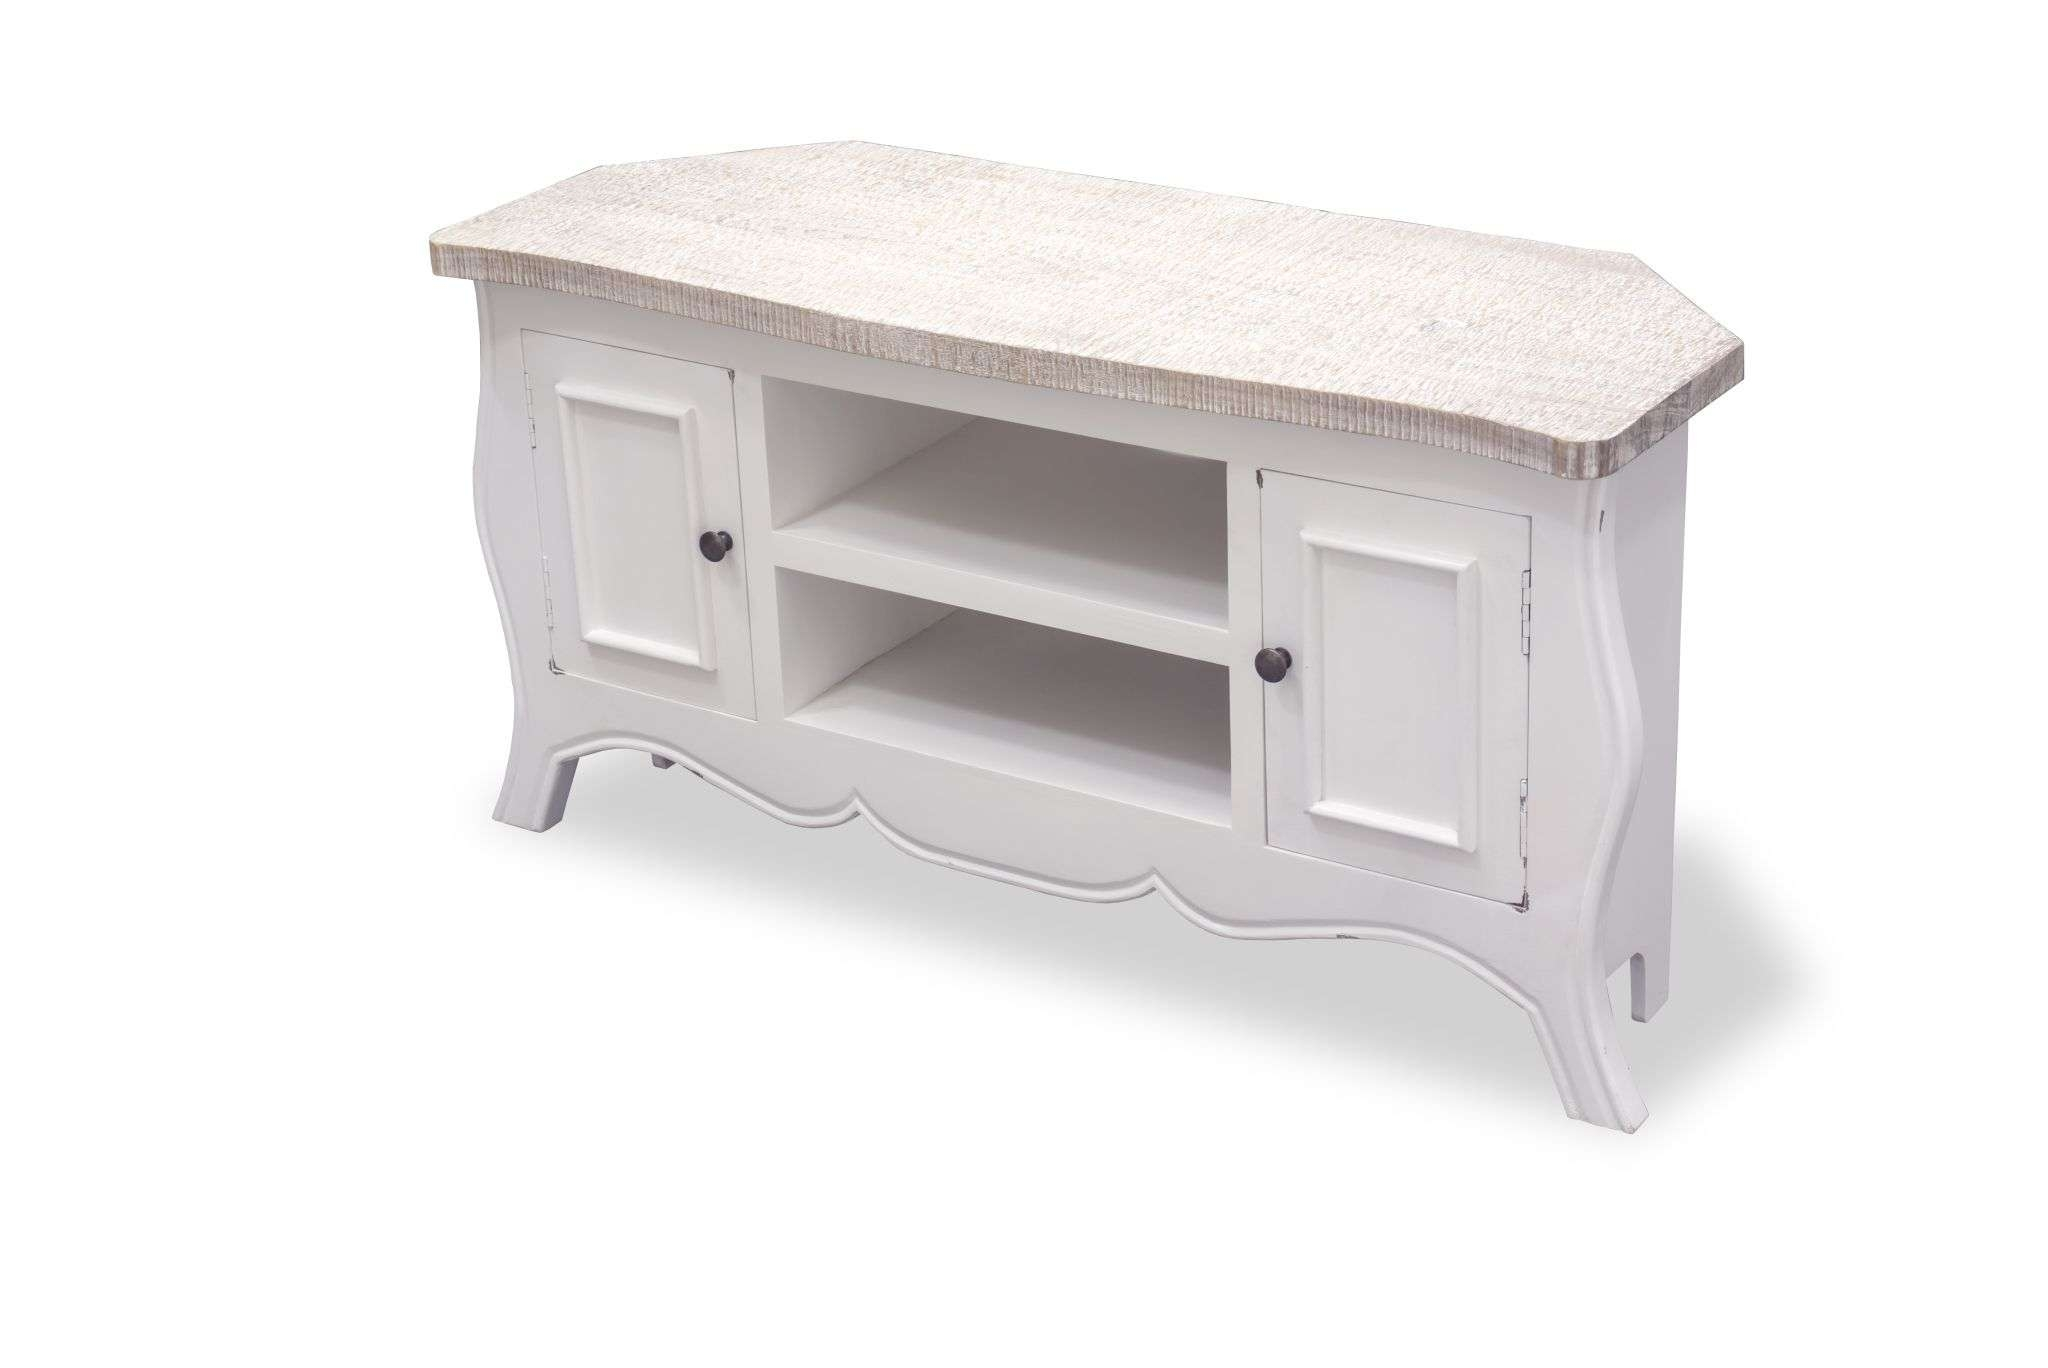 Painted Cottonwood Shabby Chic Corner Tv Cabinet 45570 P (2048 For White Corner Tv Cabinets (View 11 of 20)